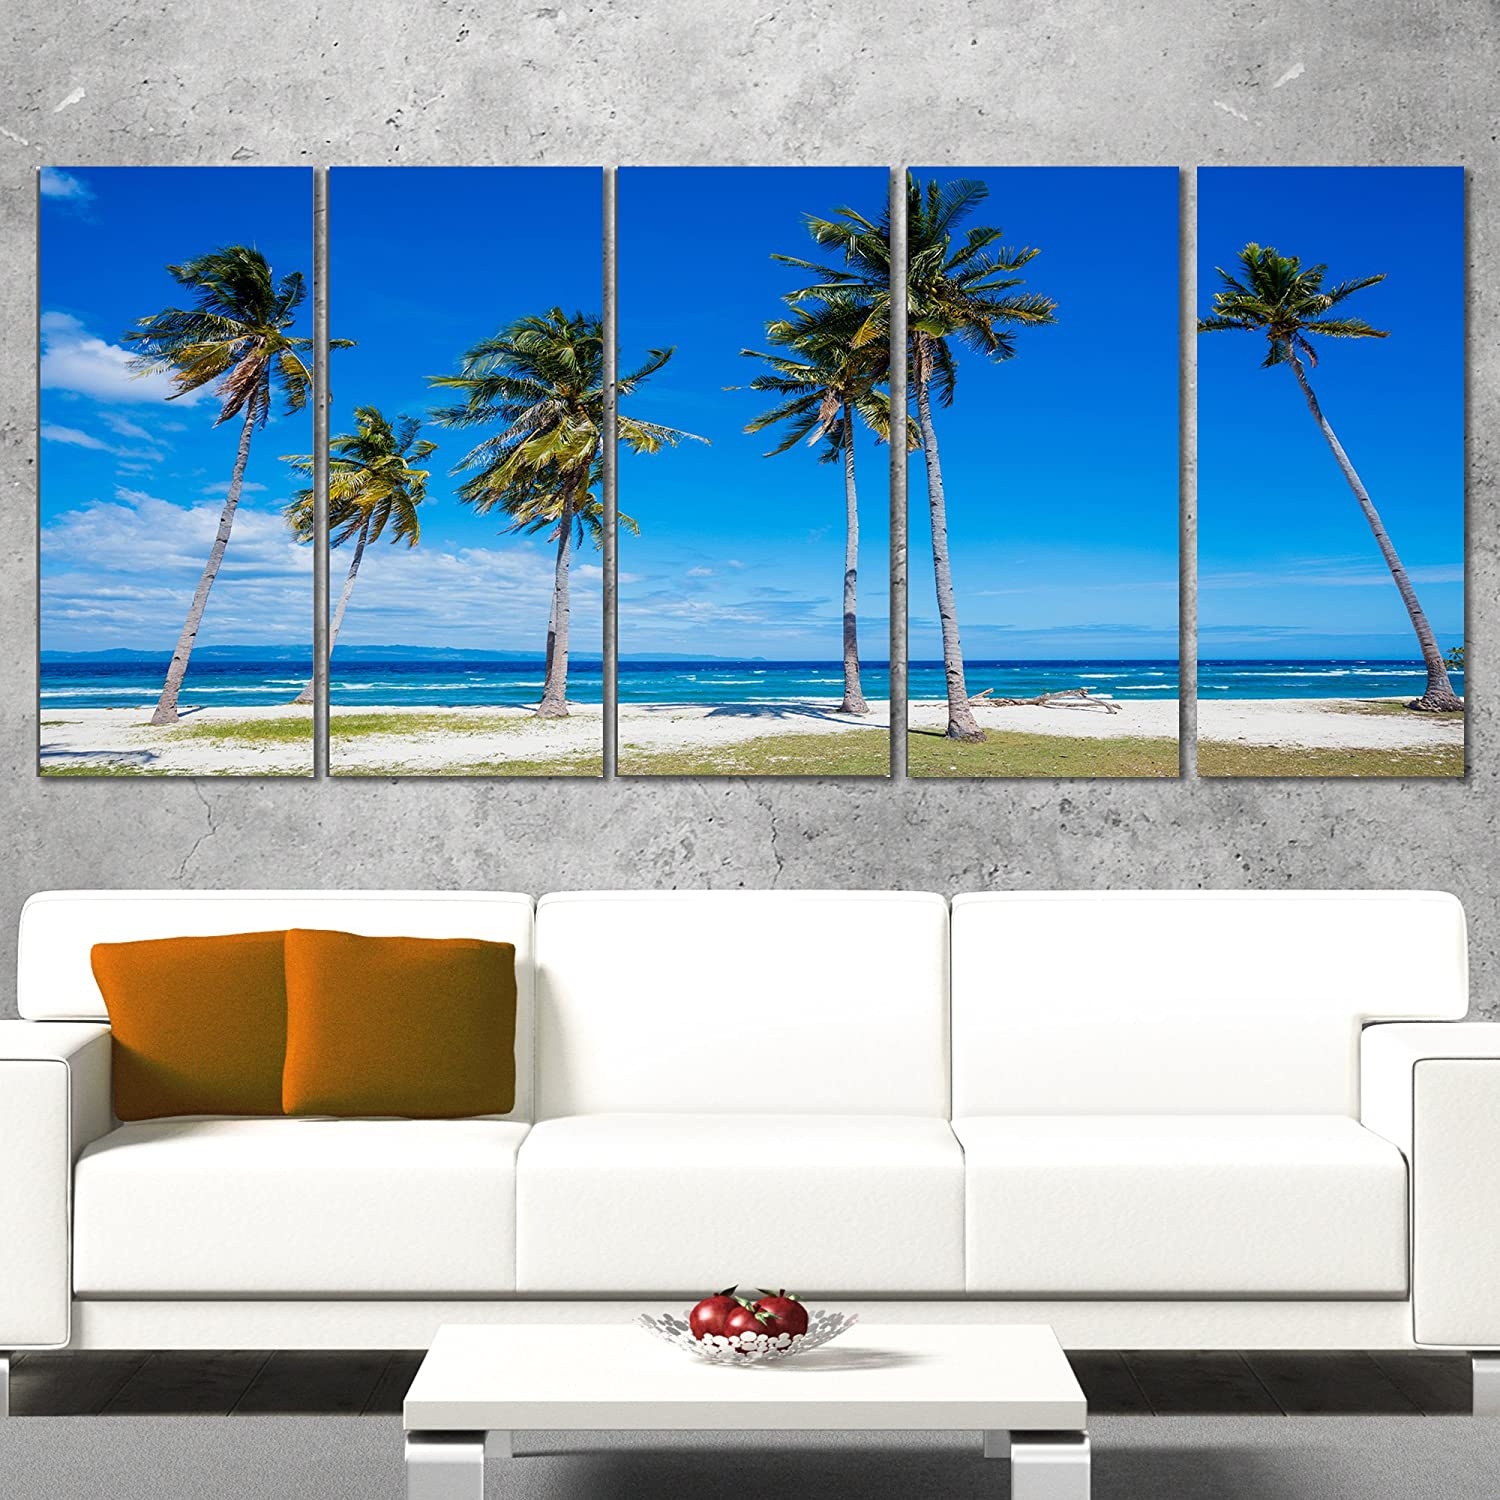 Designart Bright and Clear Tropical Beach-Extra Large Seascape Art Canvas-60x28 5 Piece-PT10845-401, 60x28-5 Equal Panels